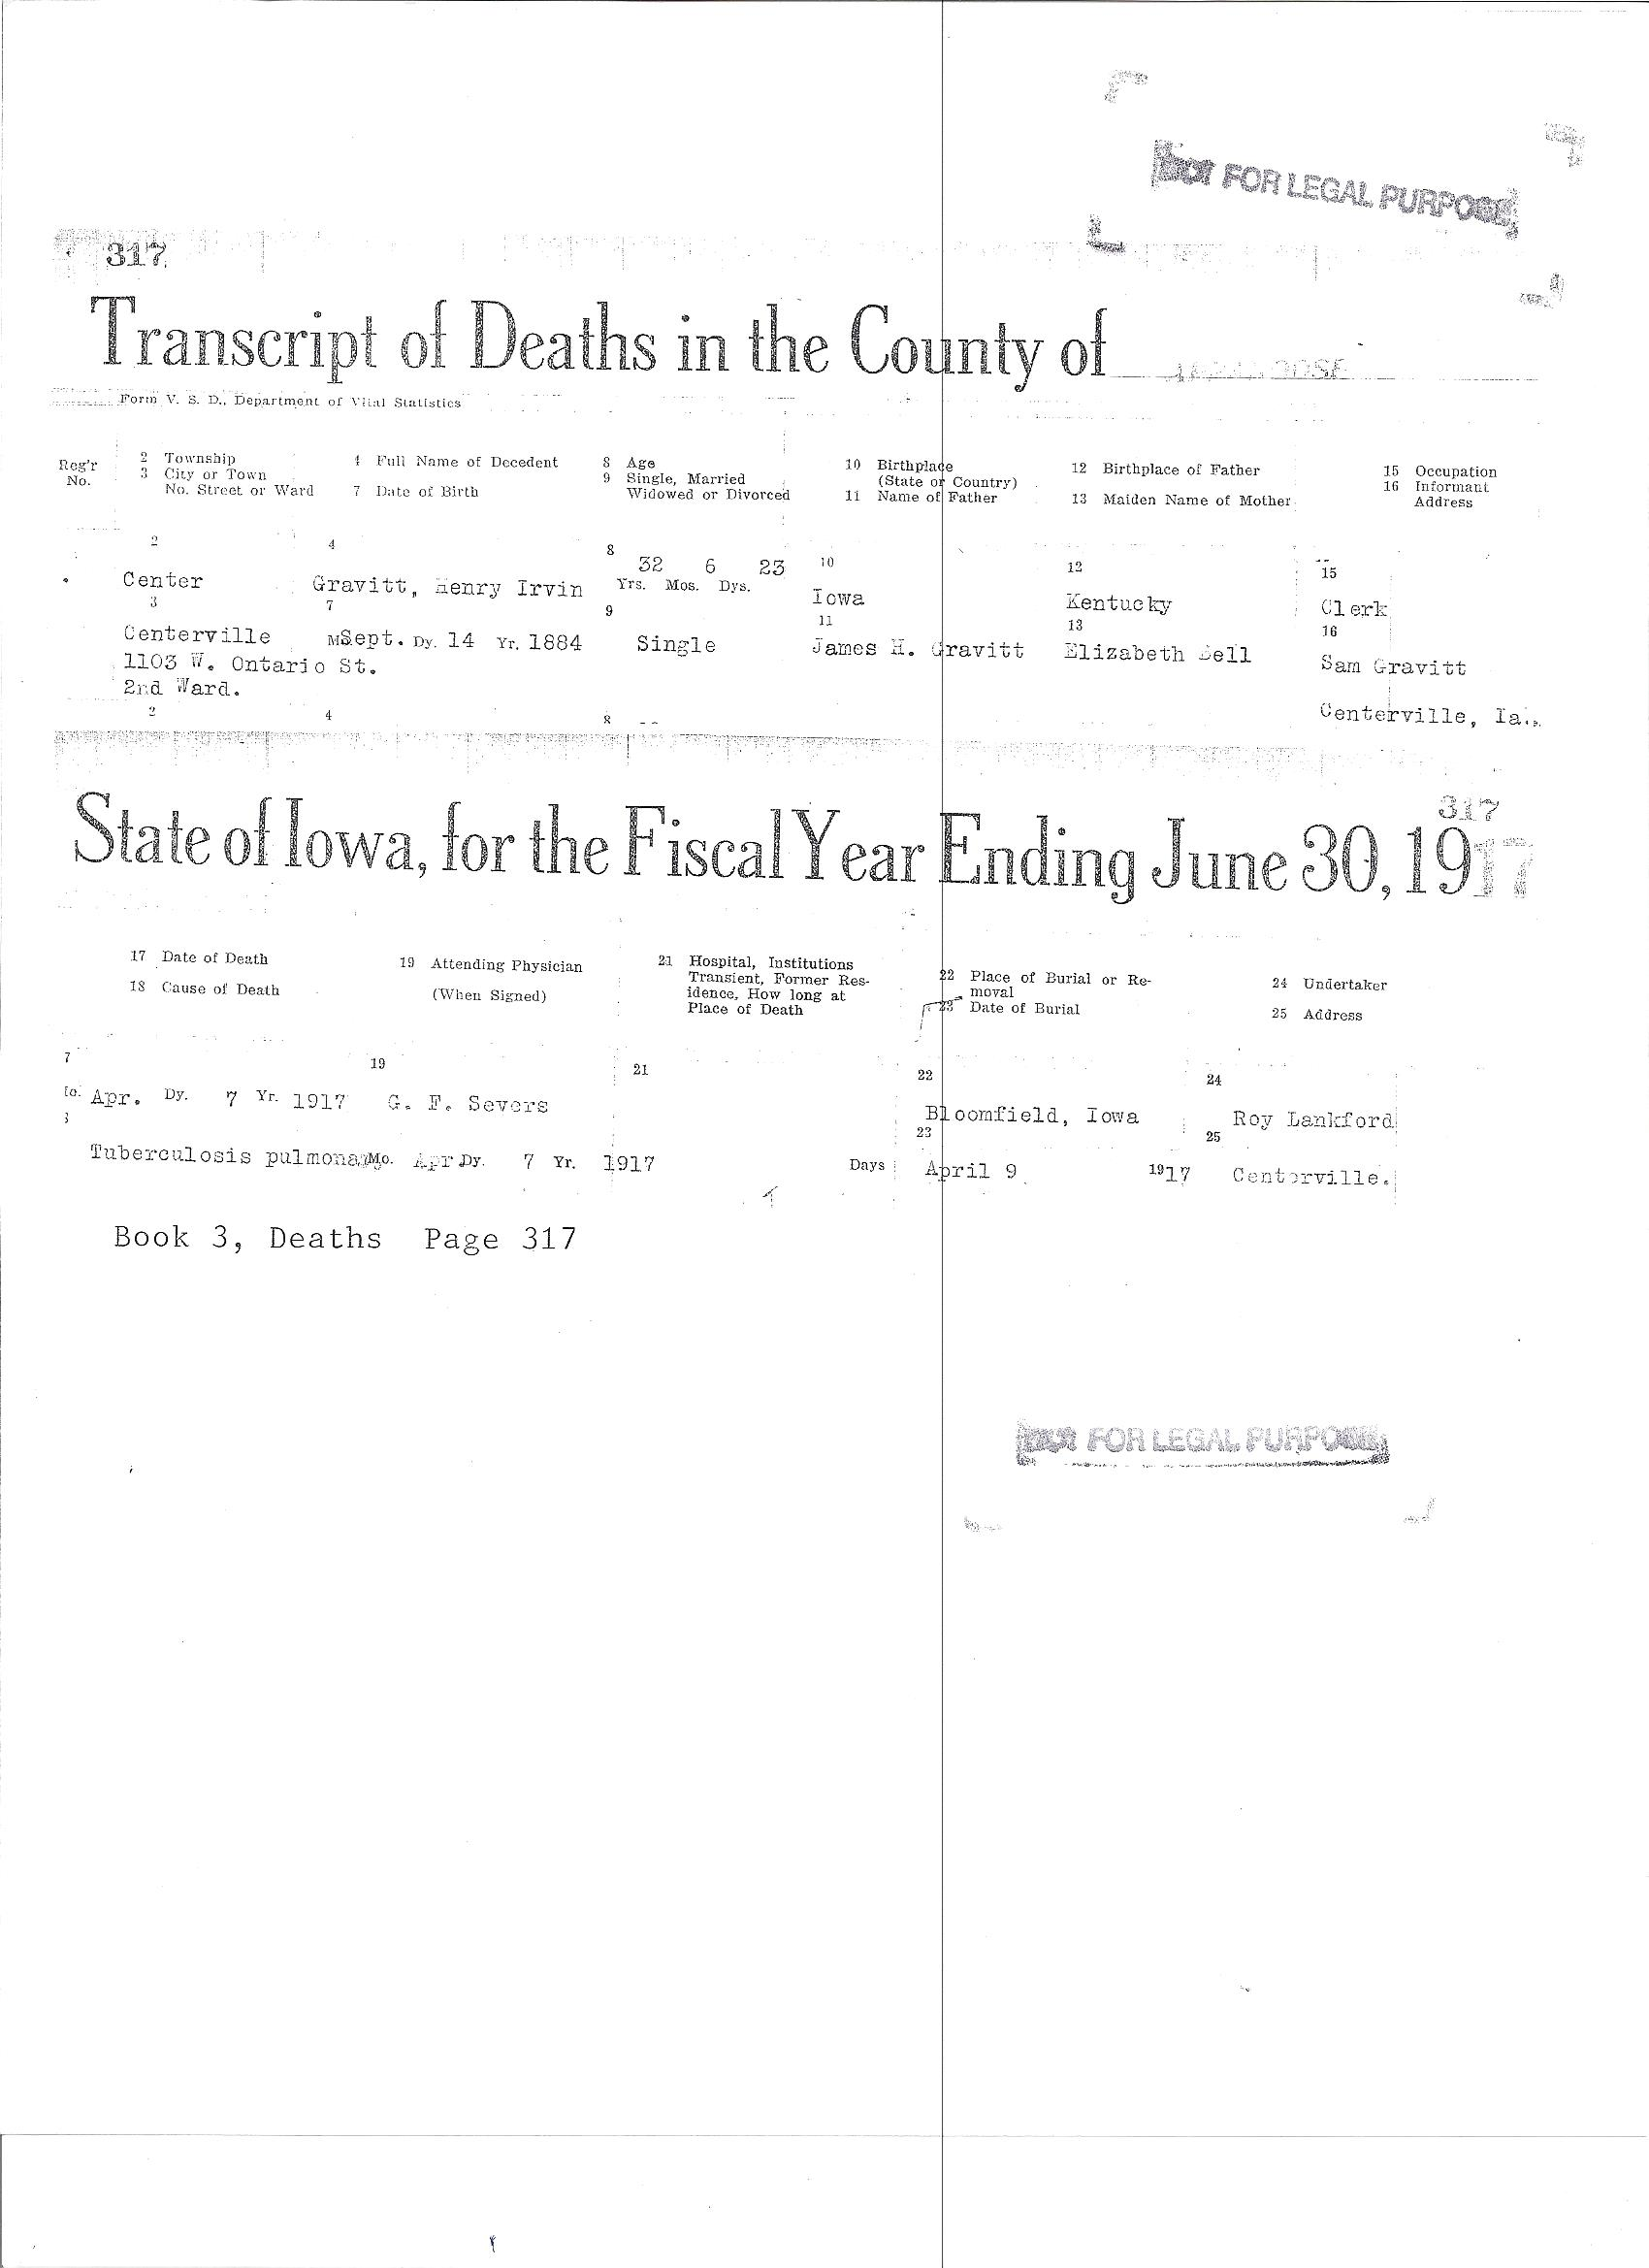 Adams - Ashby Family History - Person Page 140